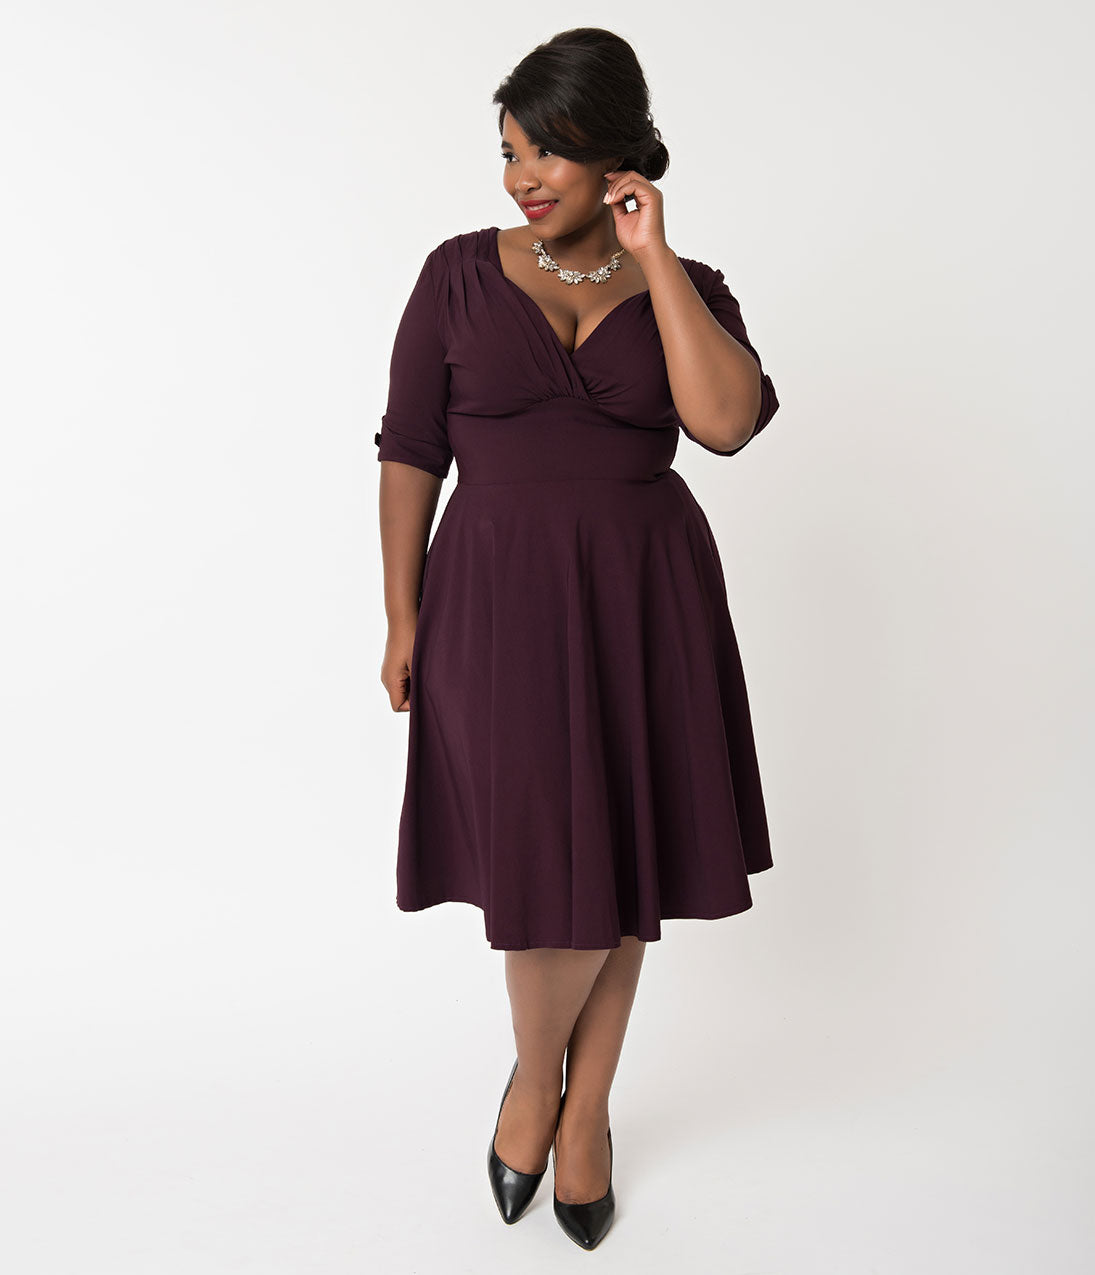 1950s Plus Size Dresses, Swing Dresses Unique Vintage Plus Size 1950S Eggplant Purple Delores Swing Dress With Sleeves $88.00 AT vintagedancer.com